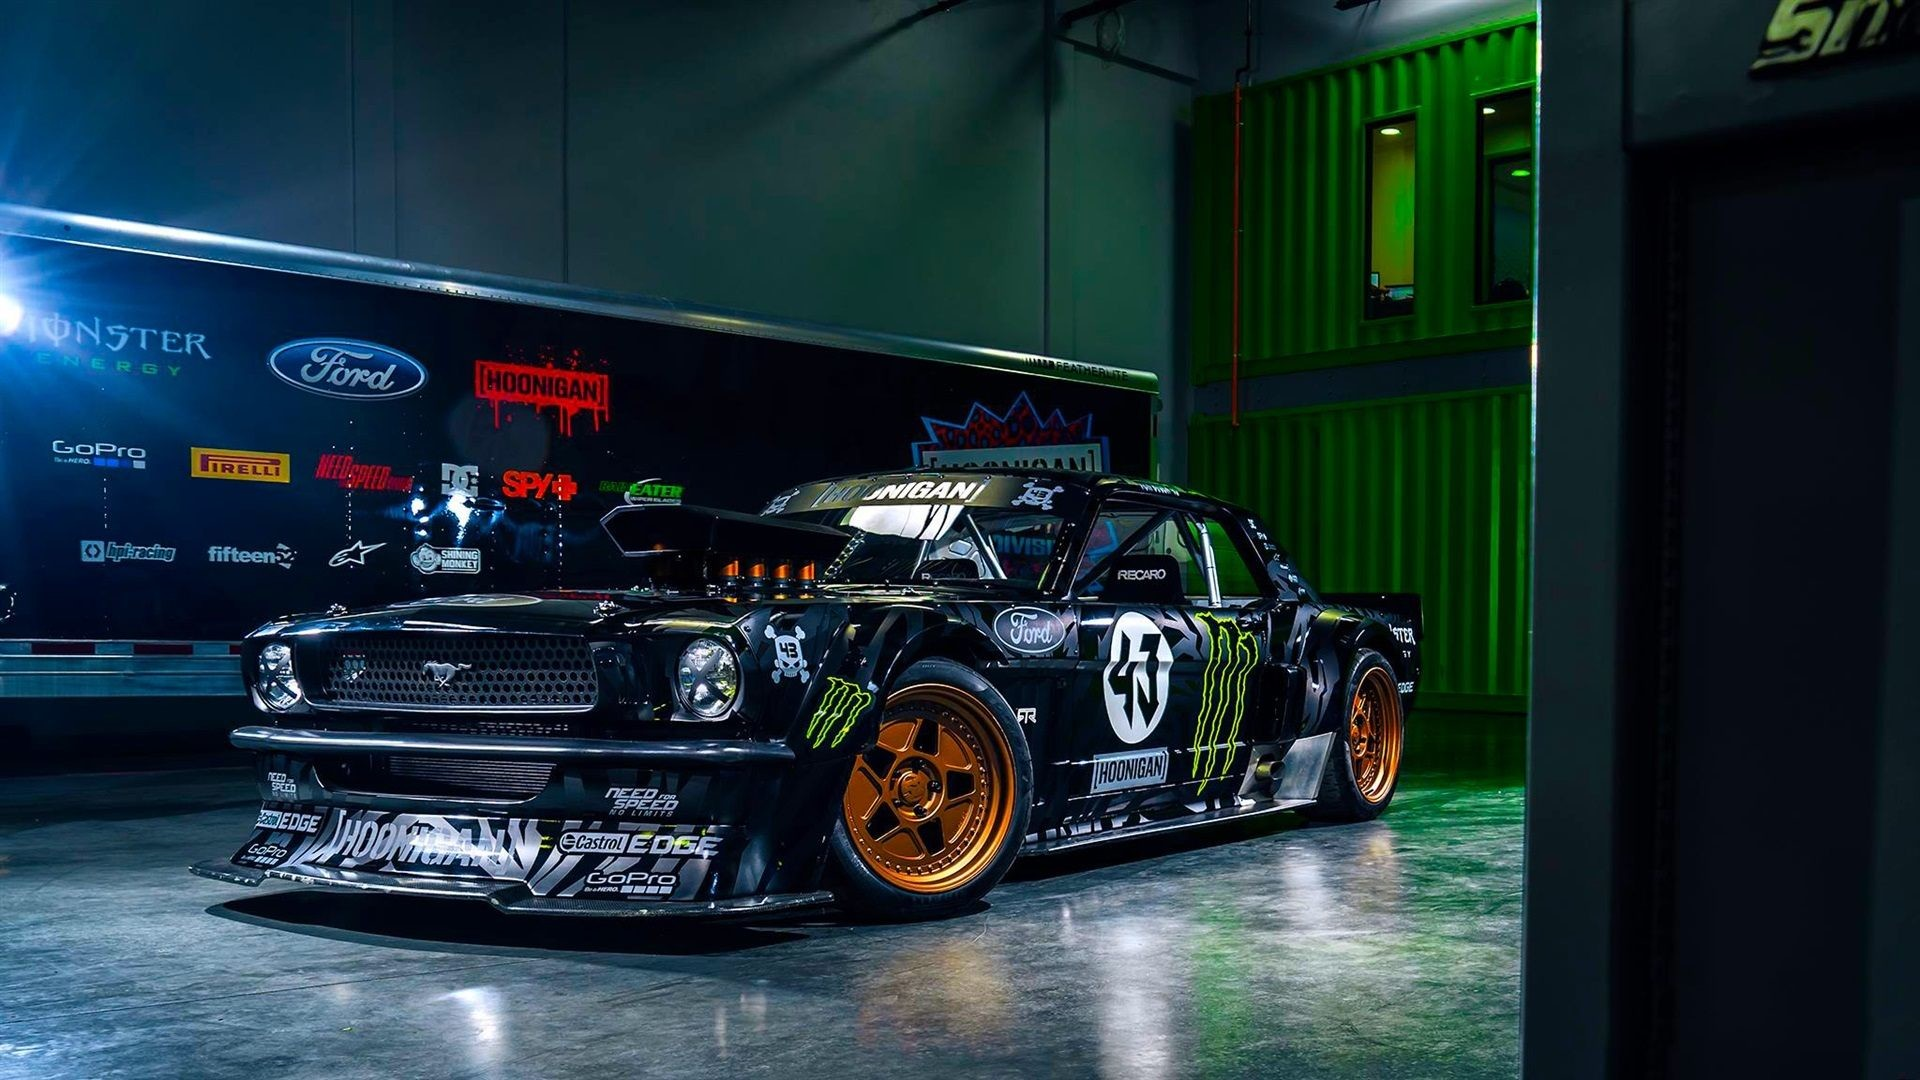 Ford Mustang RTR Classic Car Wallpaper